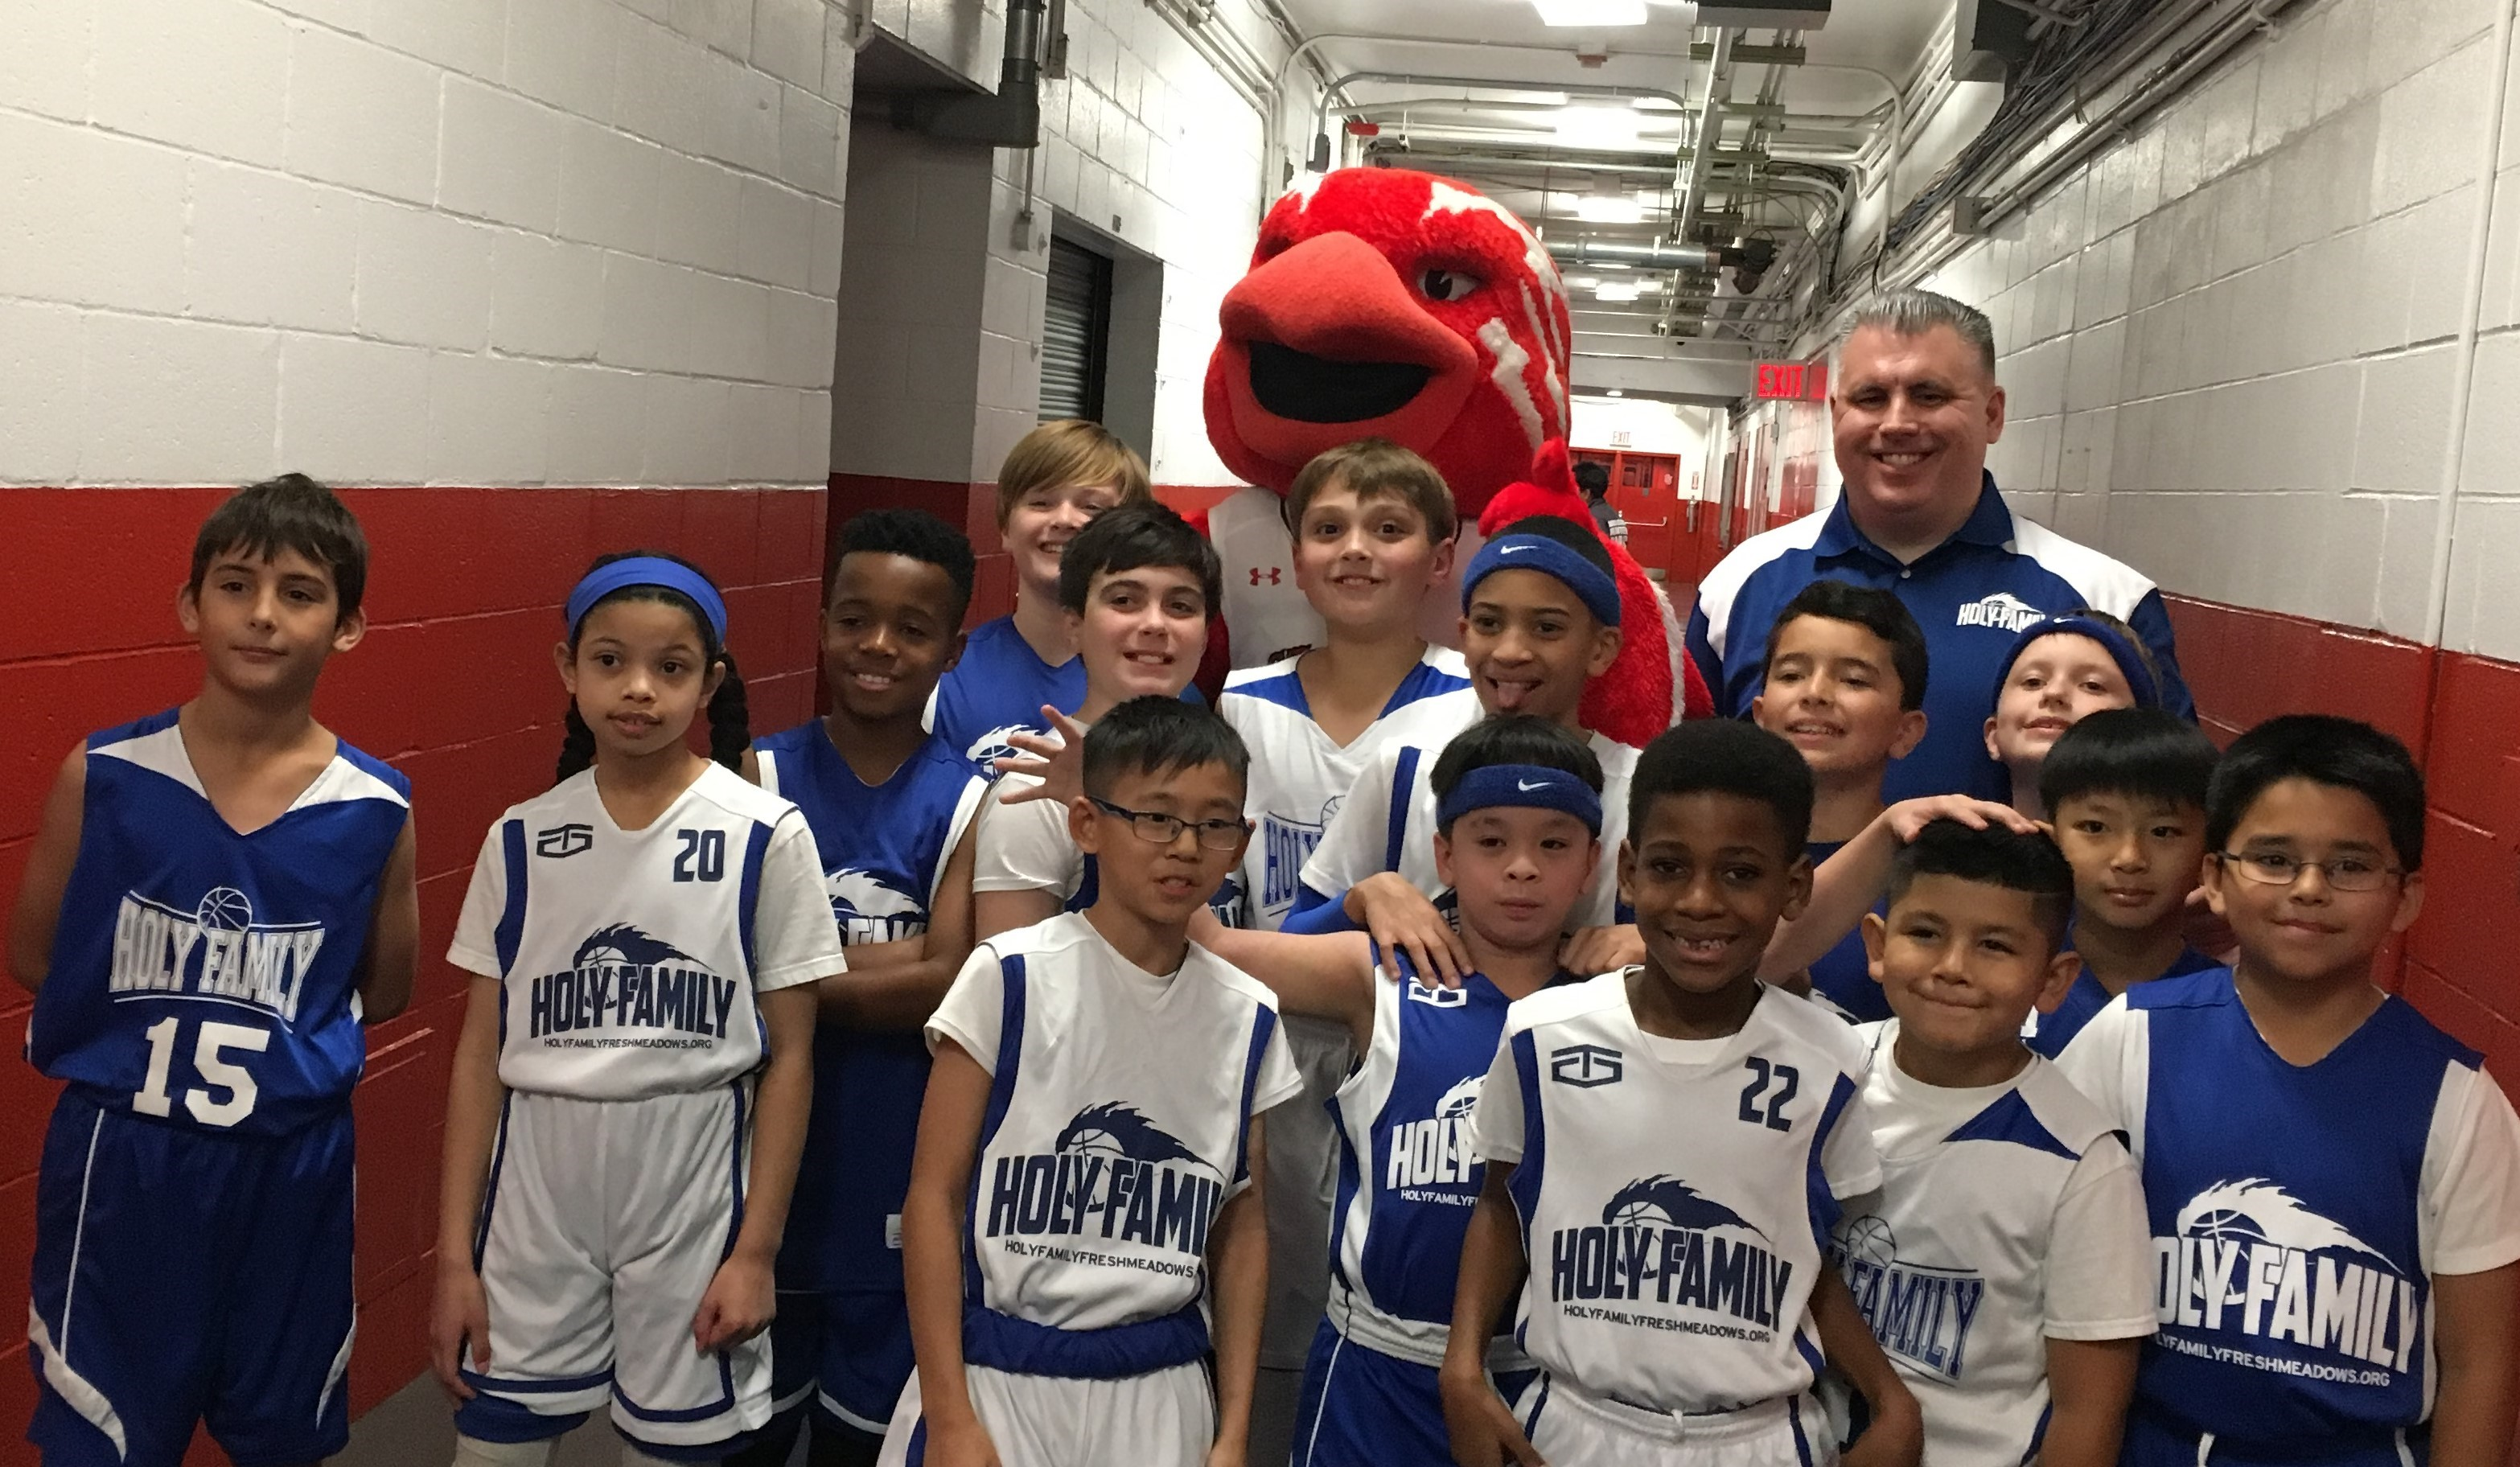 Holy Family Catholic Academy students in basketball uniforms